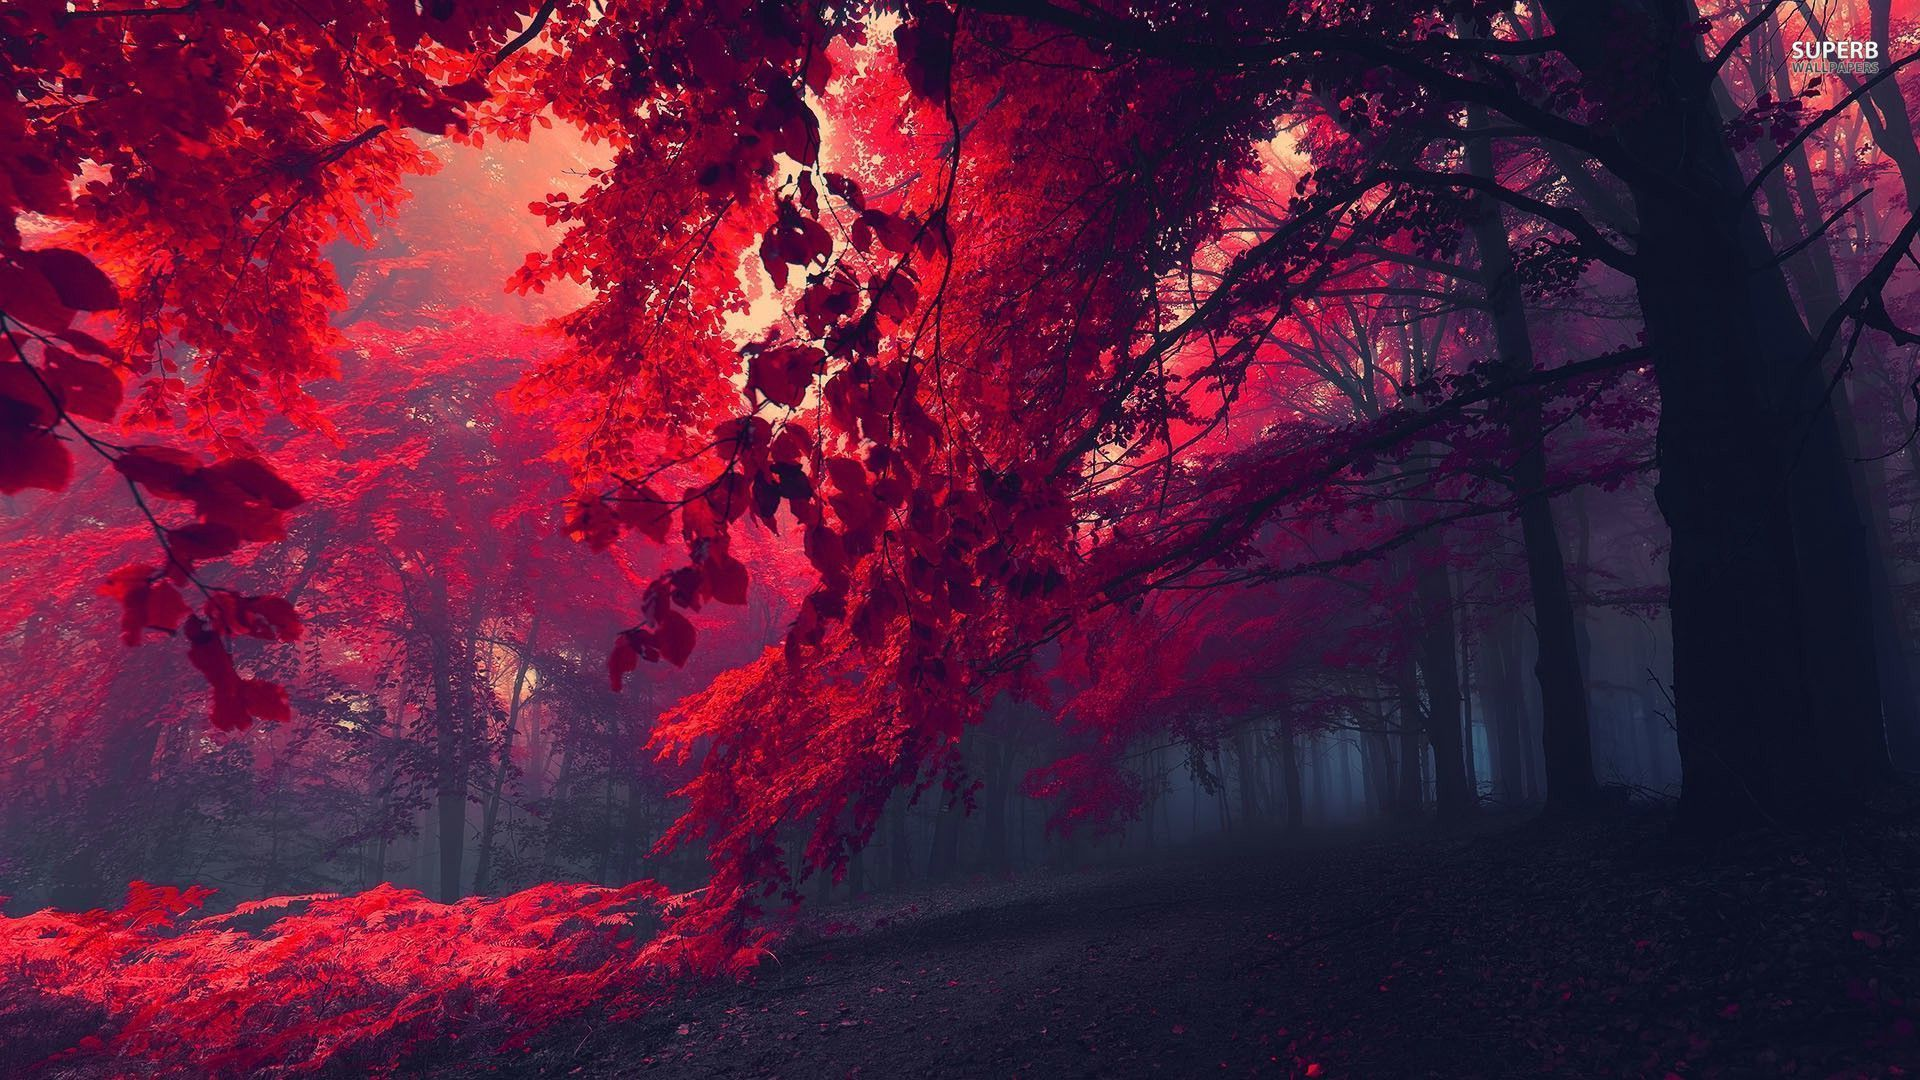 Crimson Forest Red forest wallpaper 1920x1080